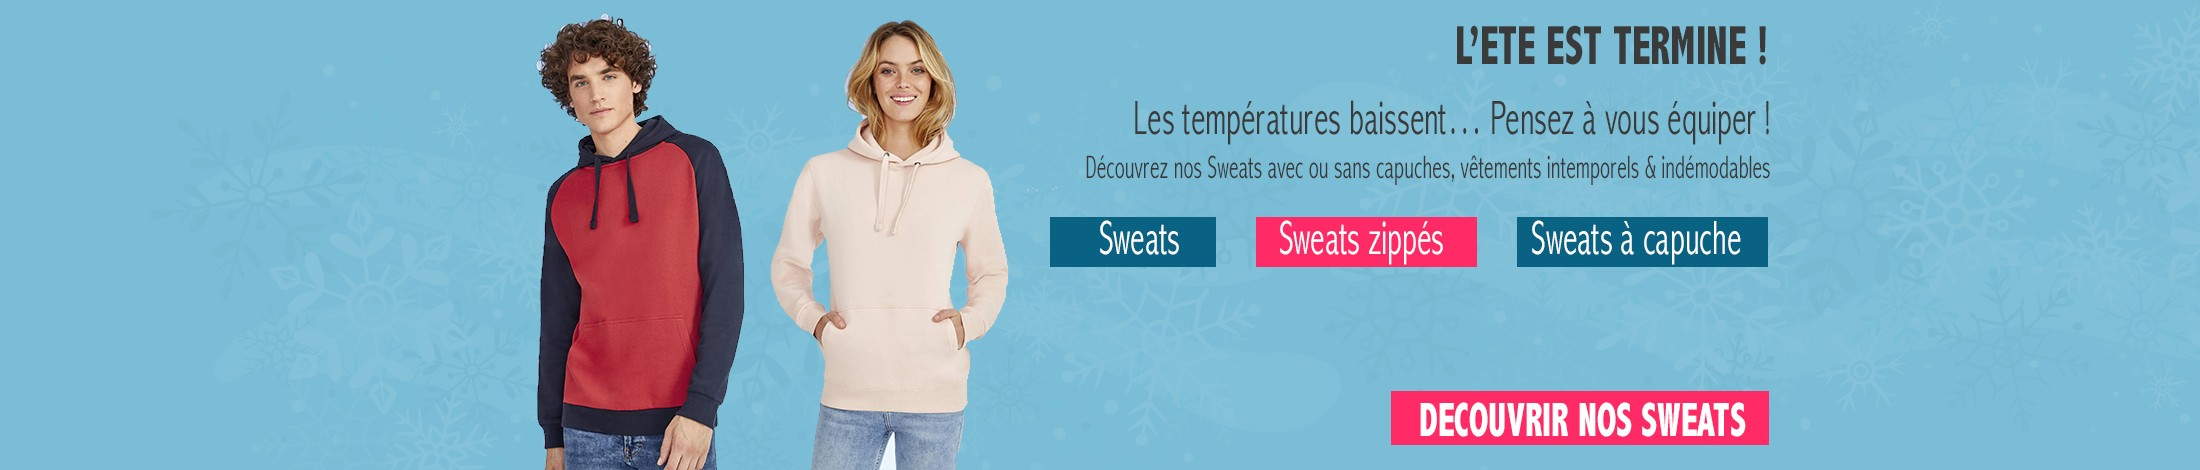 Sweat publicitaire